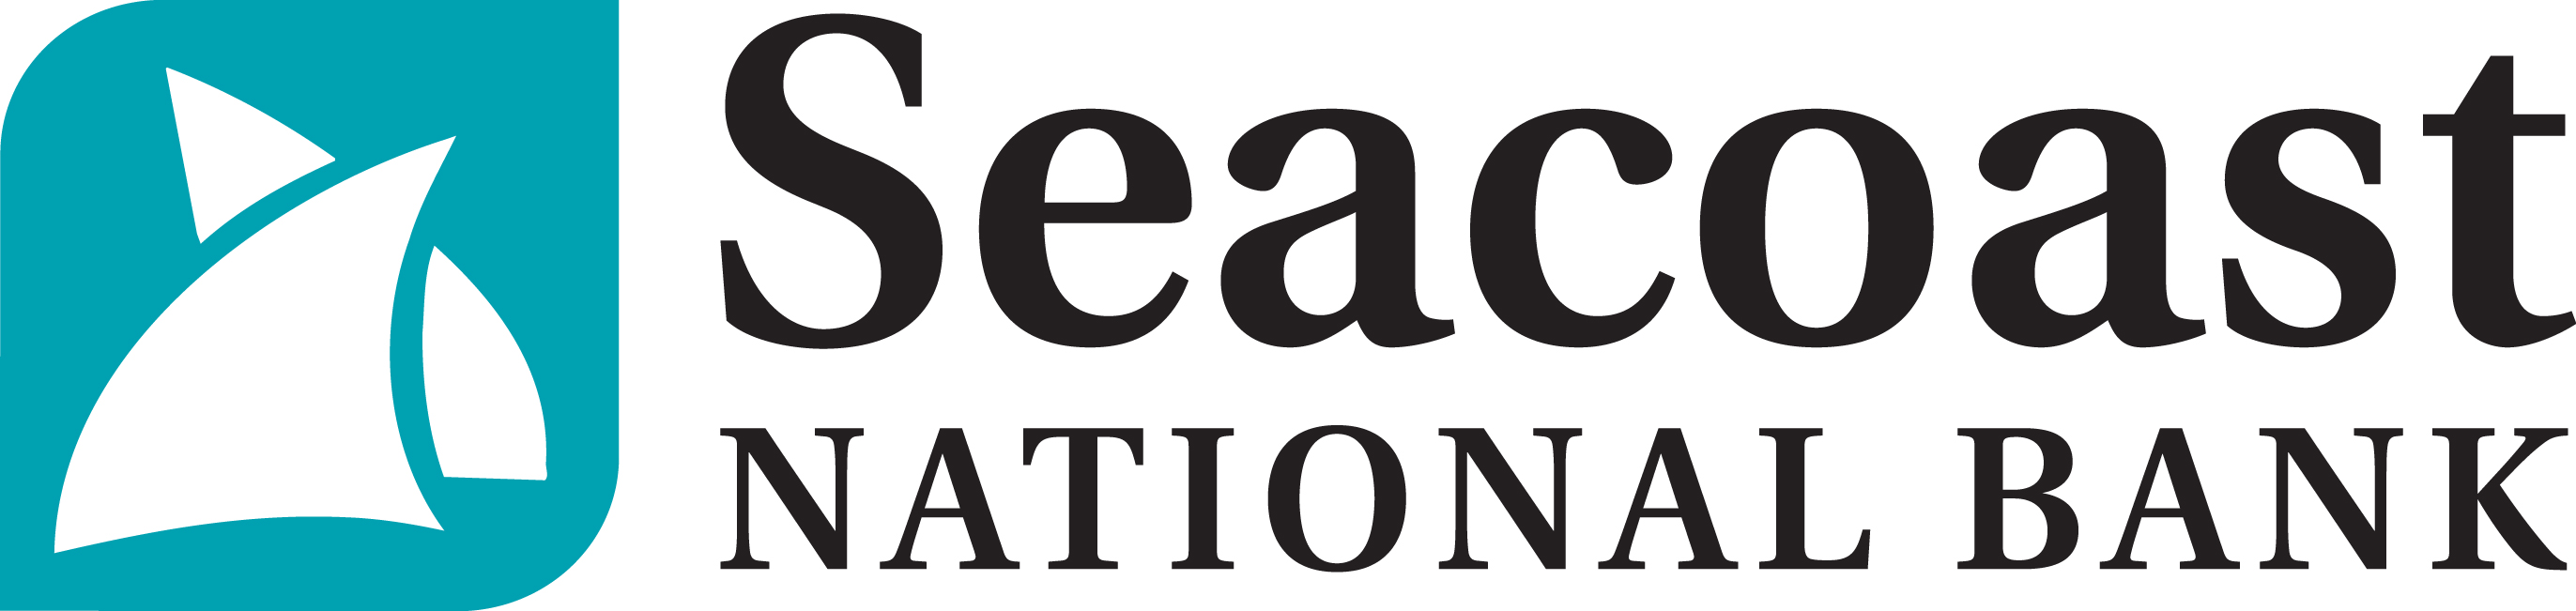 Seacoast National Bank logo